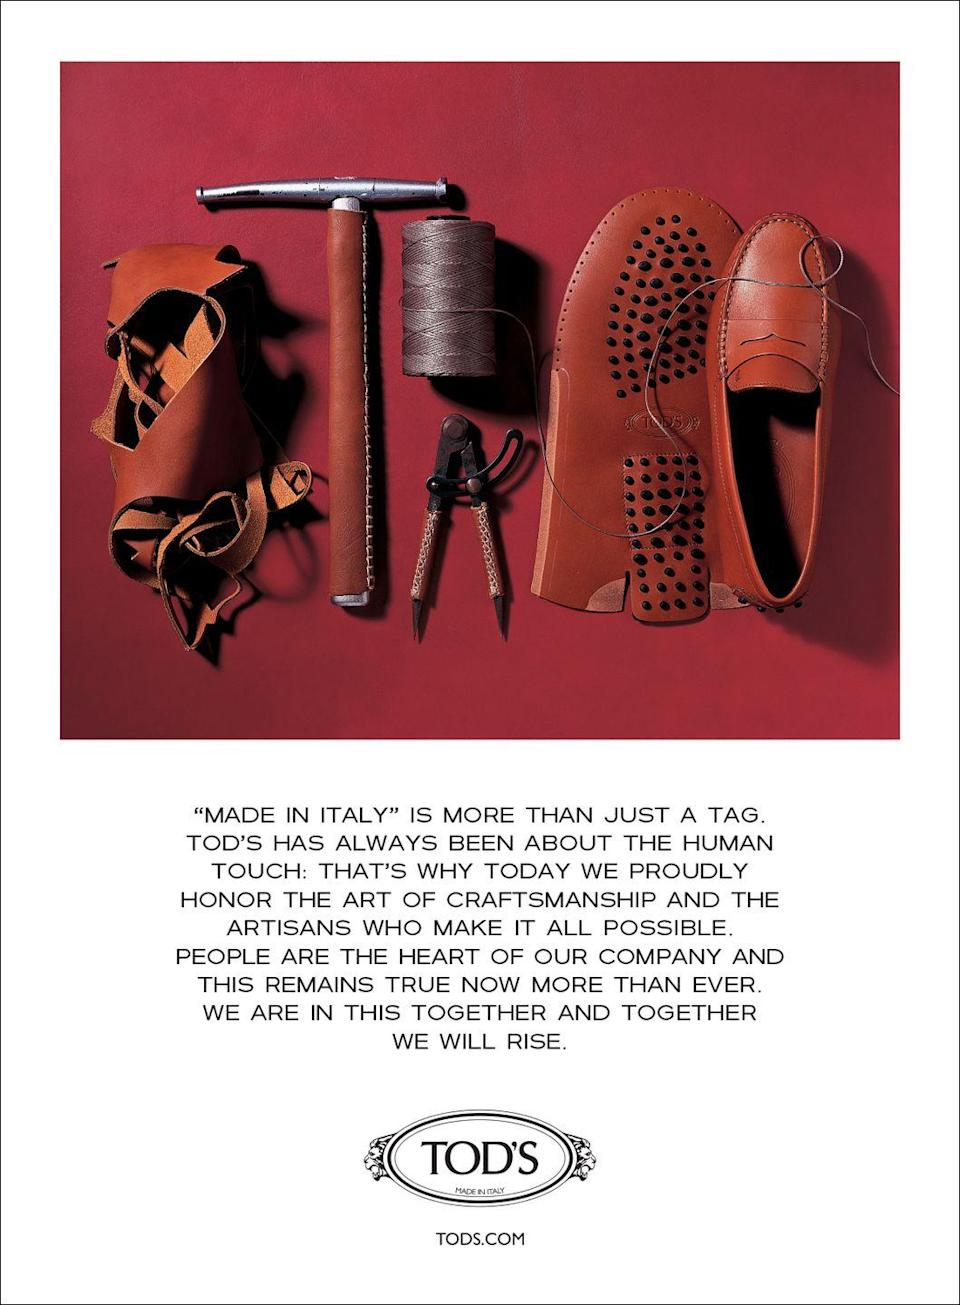 """<p>""""Made in Italy"""" is more than just a tag. Tod's has always been about the human touch: that's why today we proudly honor the art of craftsmanship and the artisans who make it all possible. People are the heart of our company and this remains true now more than ever. We are in this together and together we will rise.</p>"""